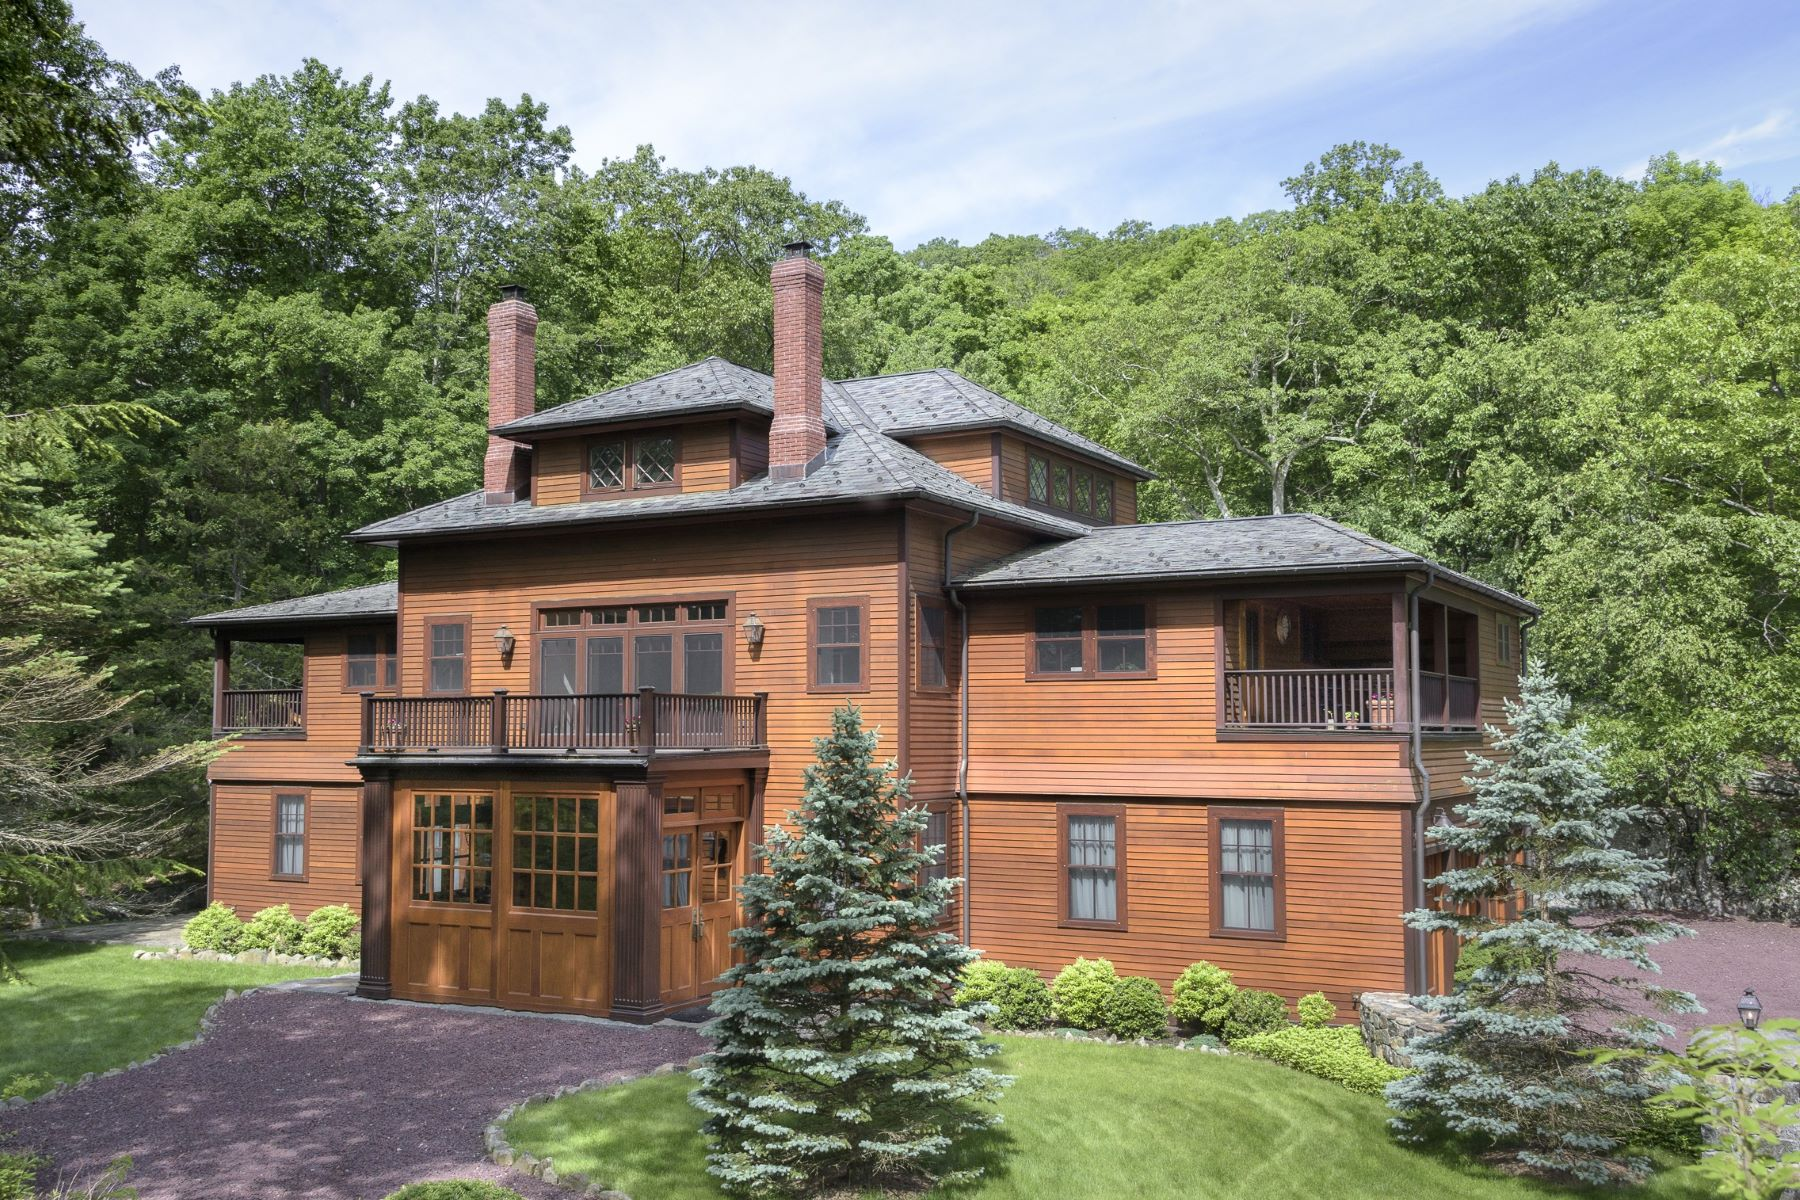 Single Family Homes for Active at Patterson Brook Carriage House 18 Patterson Brook Road Tuxedo Park, New York 10987 United States